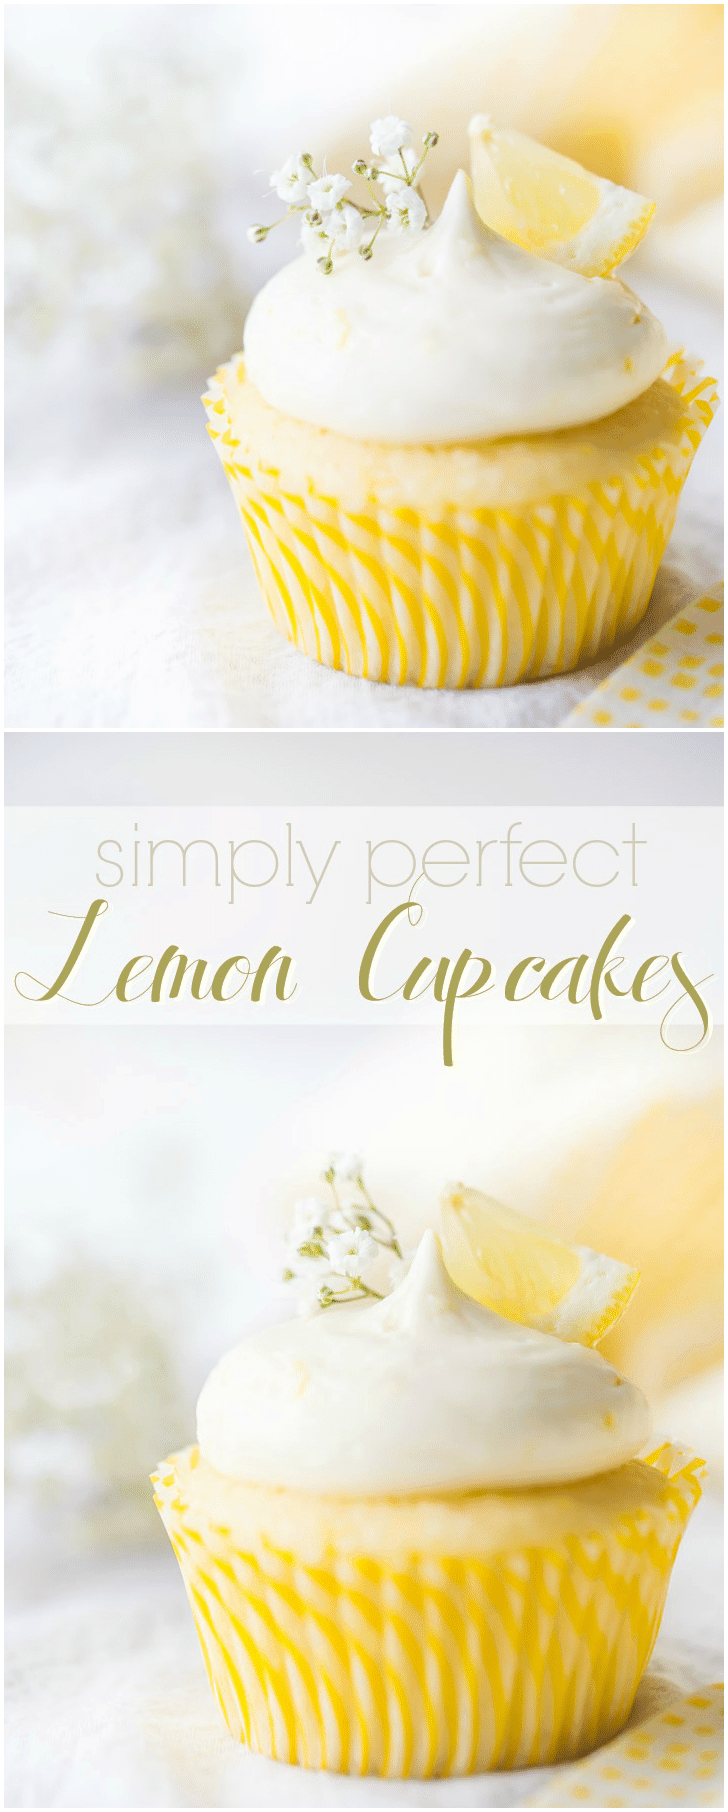 Hands-down the best lemon cupcakes ever! The cake was so moist and soft, the lemon curd filling was so bright & citrus-y, and the lemon cream cheese frosting was the perfect compliment. Great recipe for a lemon lover! #lemon #cupcakes #fromscratch #easy #recipe #withfilling #moist #best #decorations #homemade #withcreamcheeseicing #wedding #easter #simple #fluffy #triple #frosting #fresh #creamcheese #pretty #stuffed #curd #perfect